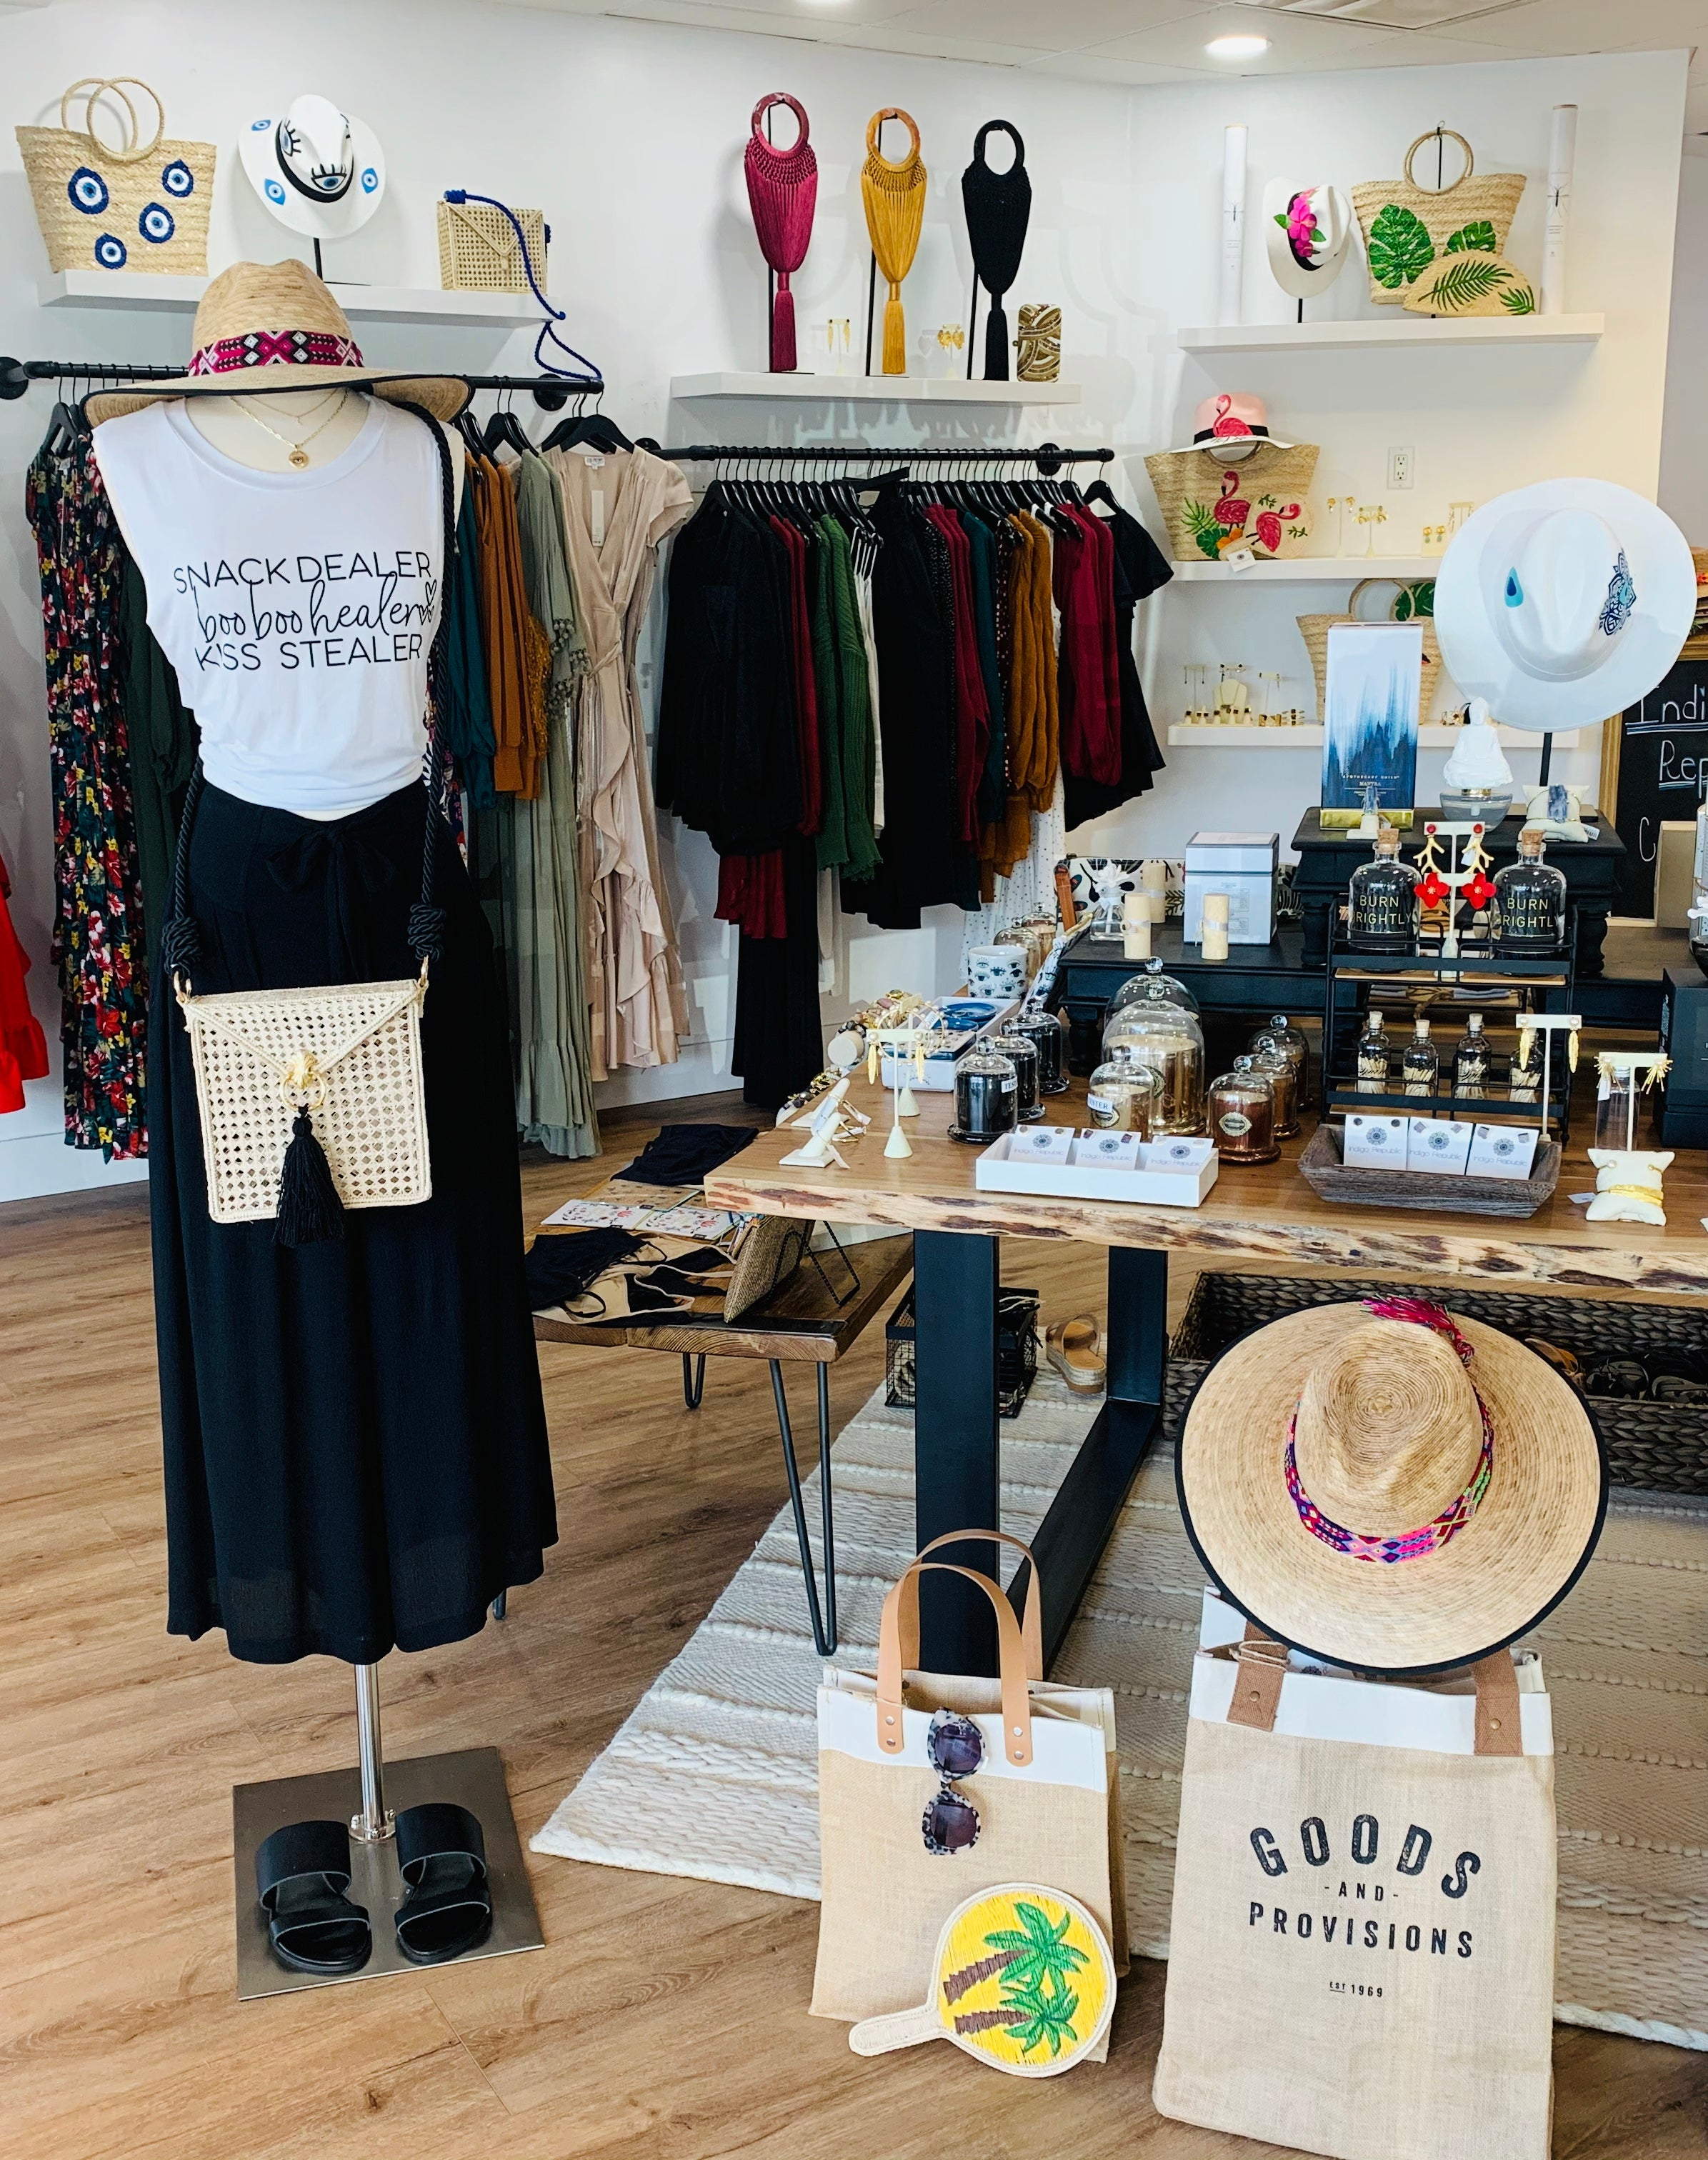 Straw hats, fans, apparel, sunglasses and candles at Indigo Republic Boutique